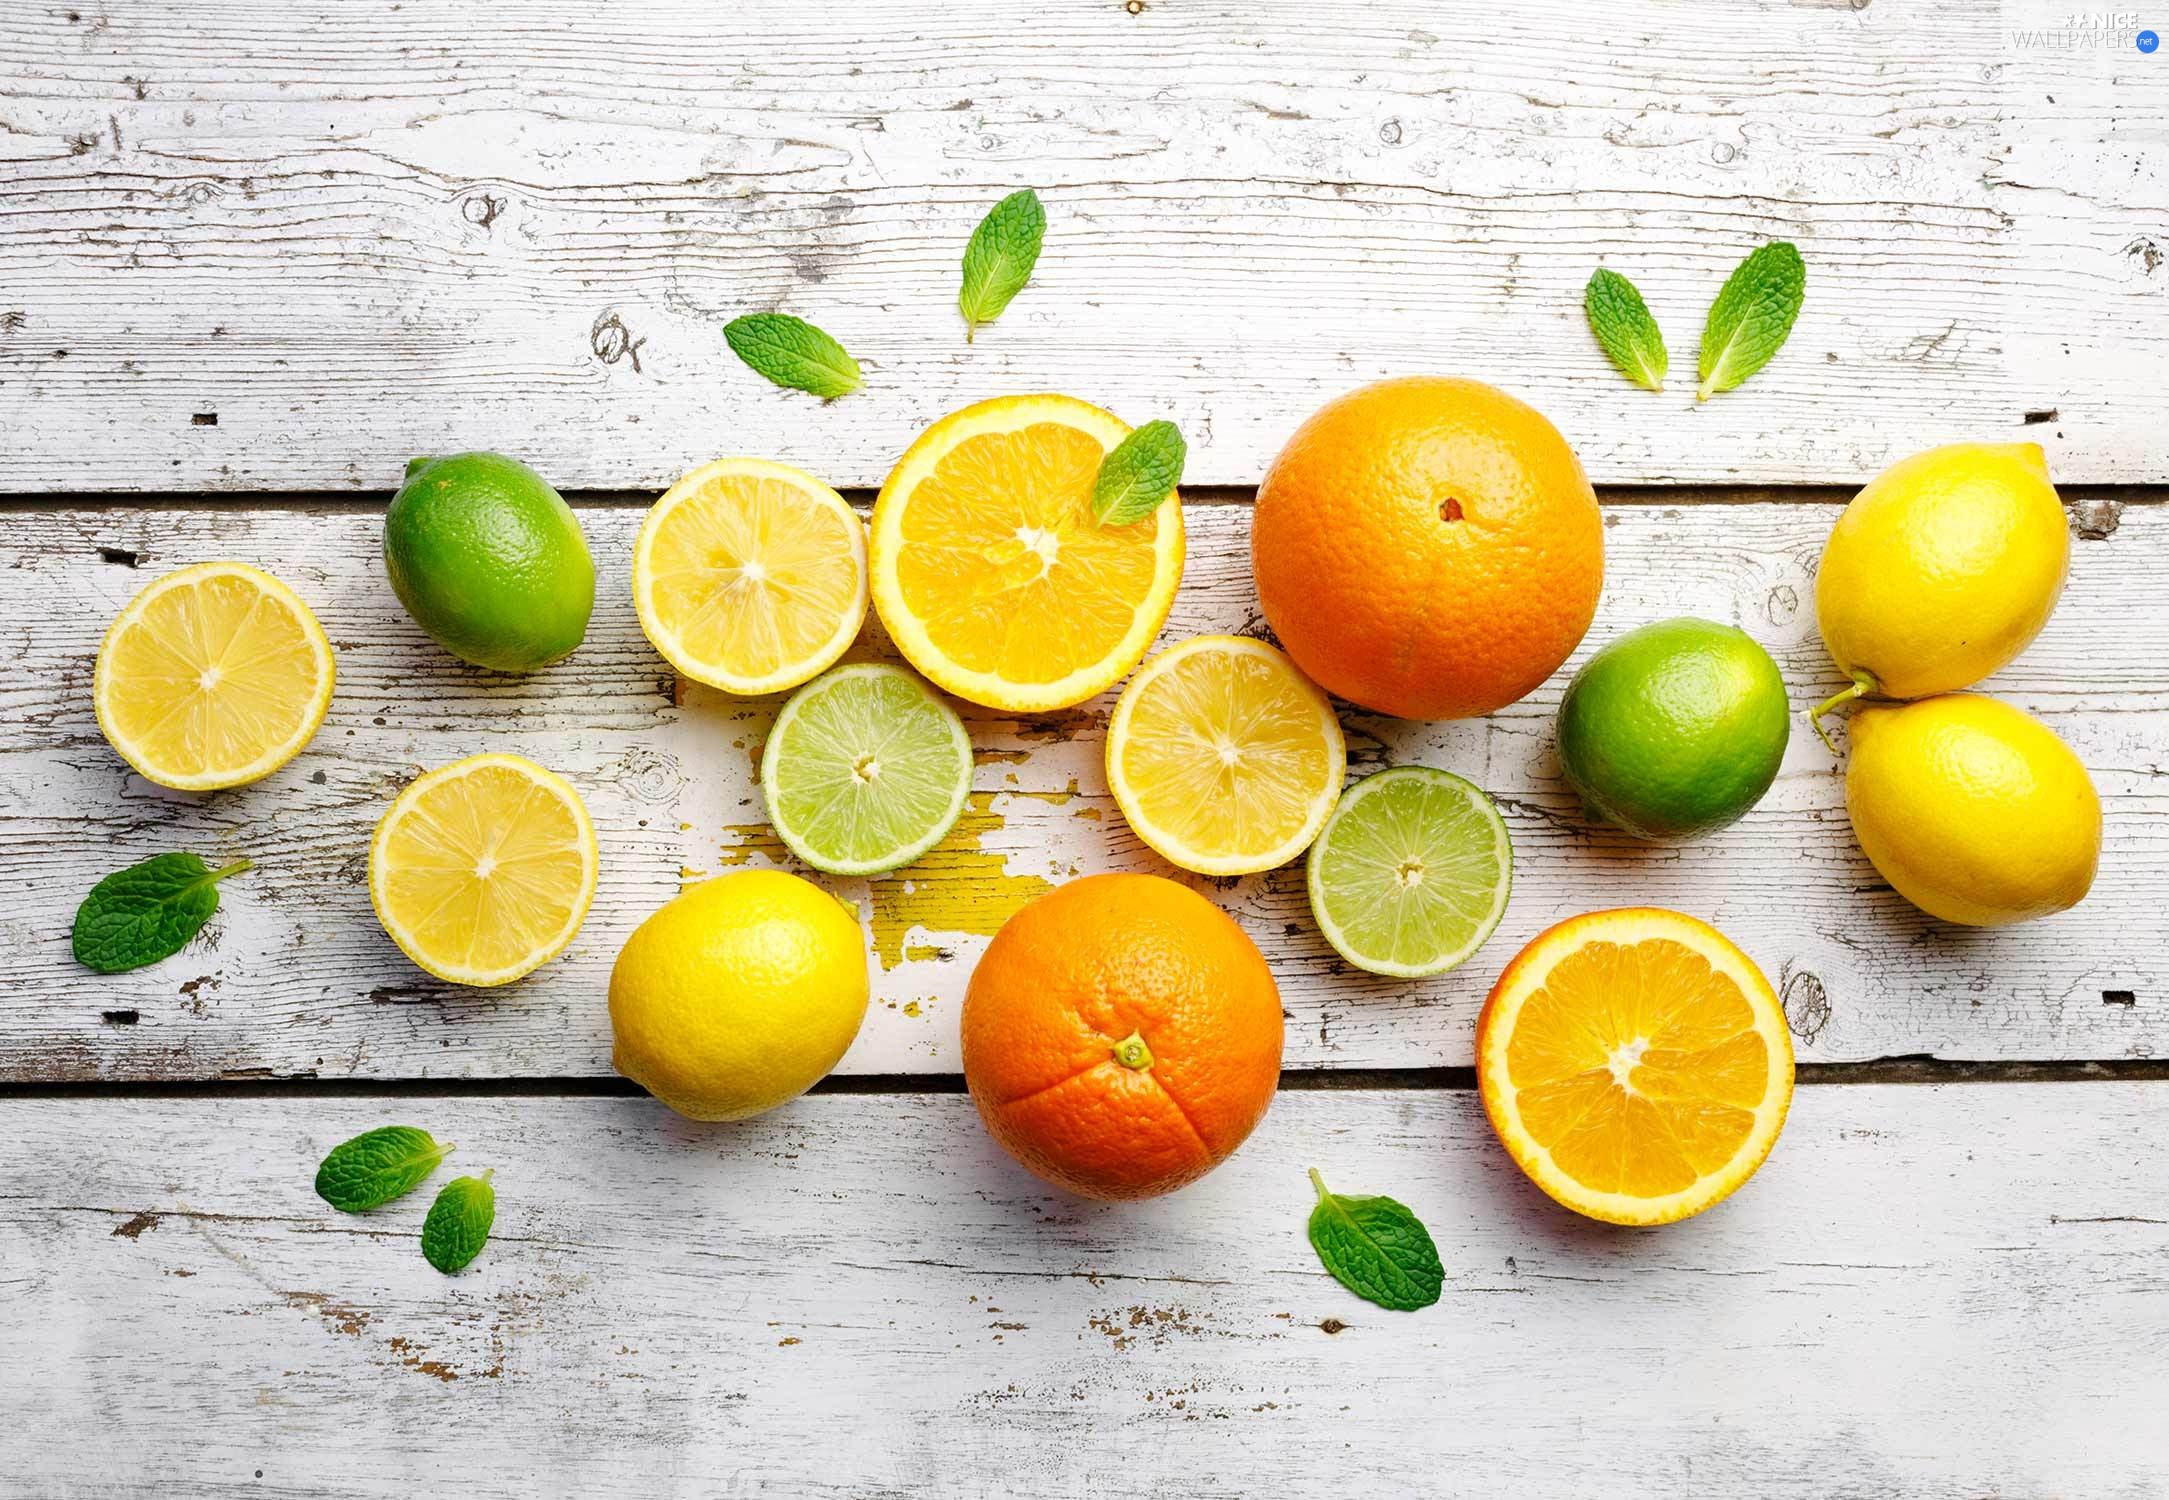 orange, lemons, boarding, limes, wood, citrus, Fruits, leaves